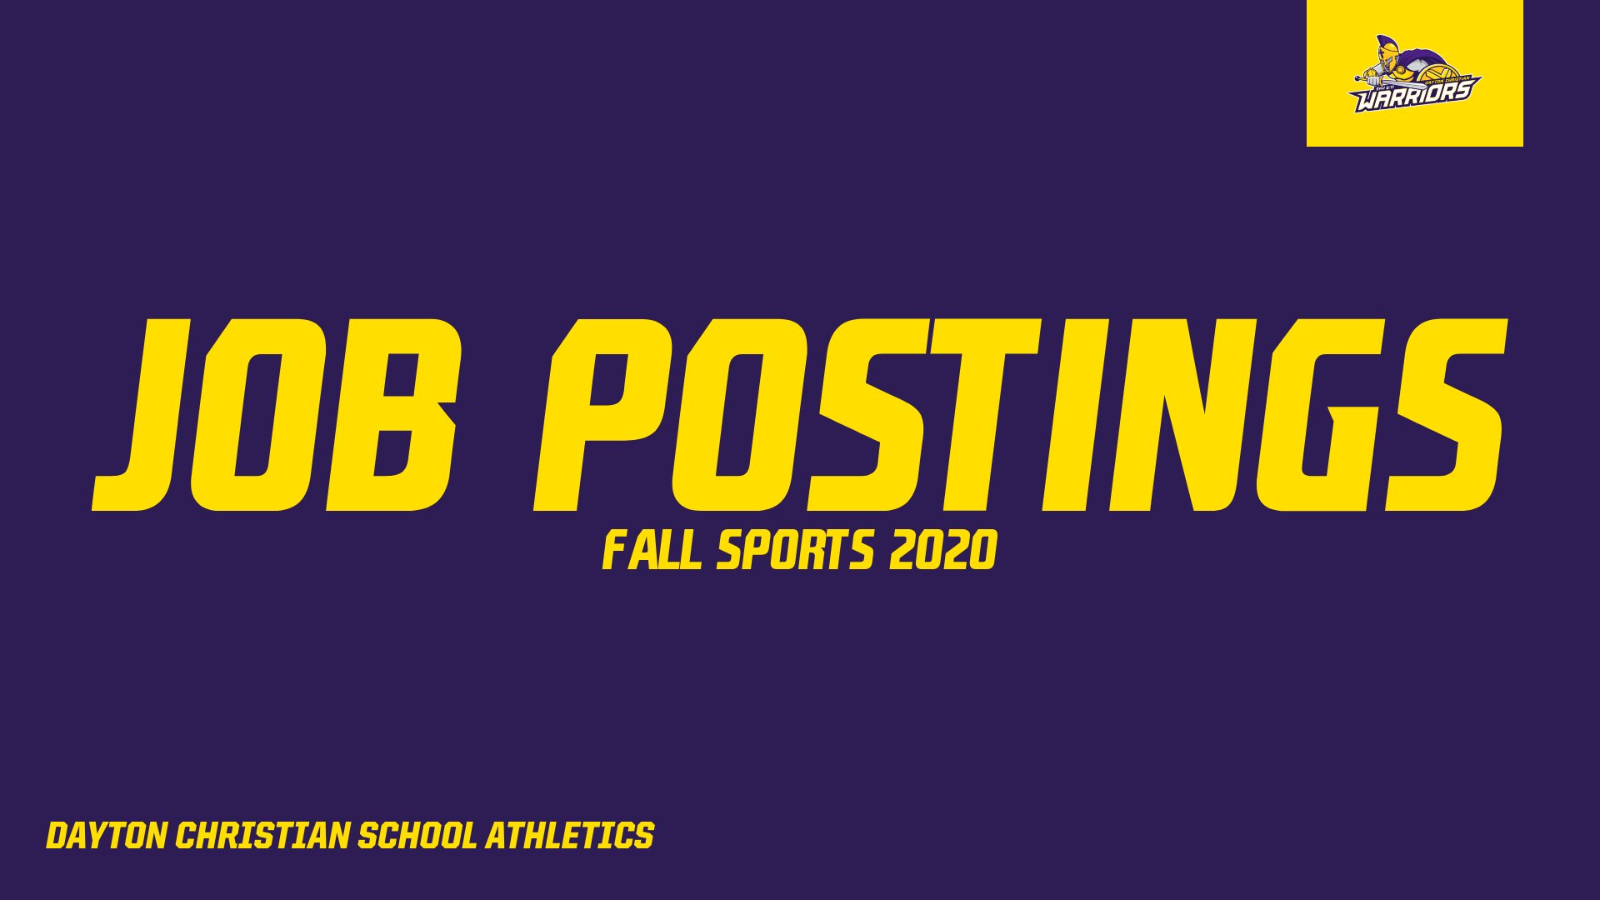 Job Postings: Fall Sports 2020